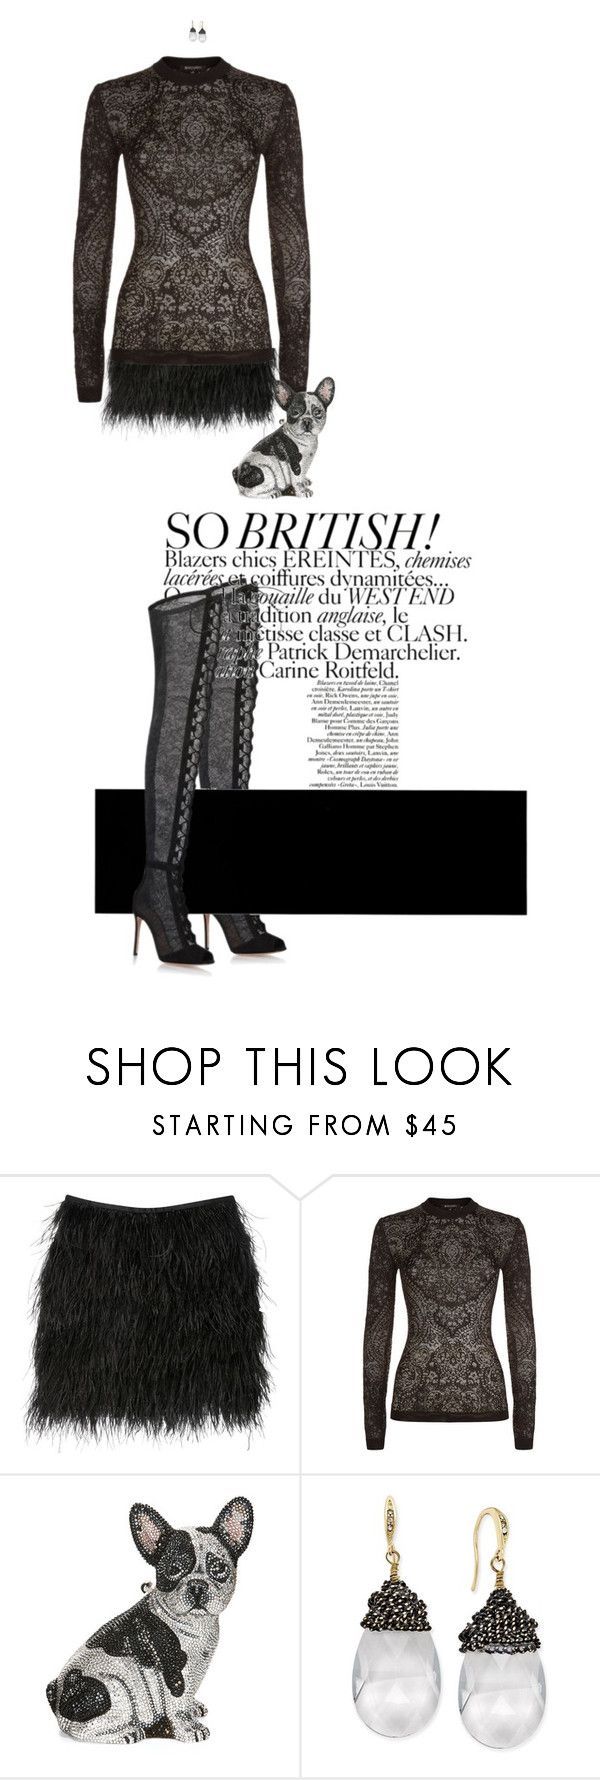 """""""Untitled #597"""" by diaval ❤ liked on Polyvore featuring Azzaro, Balmain, Judith Leiber, ABS by Allen Schwartz and Gianvito Rossi"""